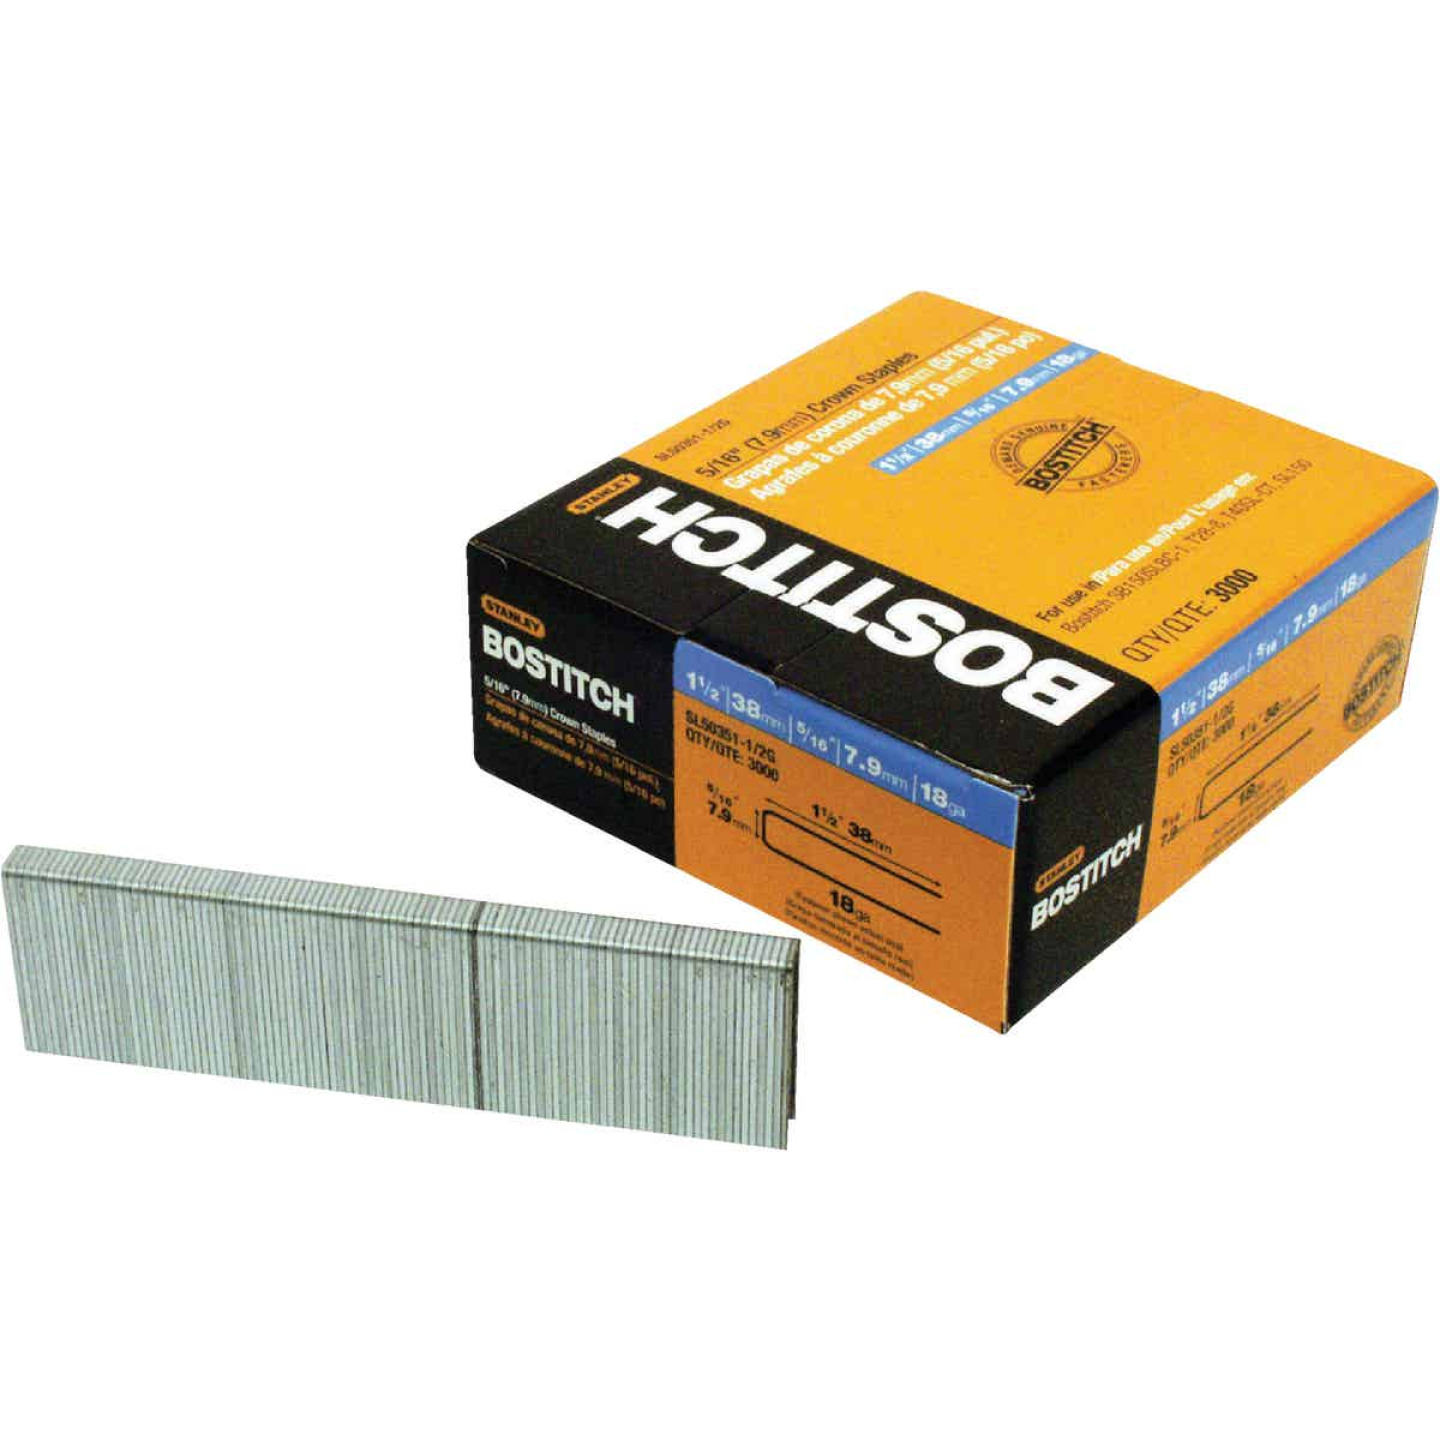 Bostitch 18-Gauge 5/16 In. x 1-1/2 In. Pneumatic Cap Staples (3000 Ct.) Image 1